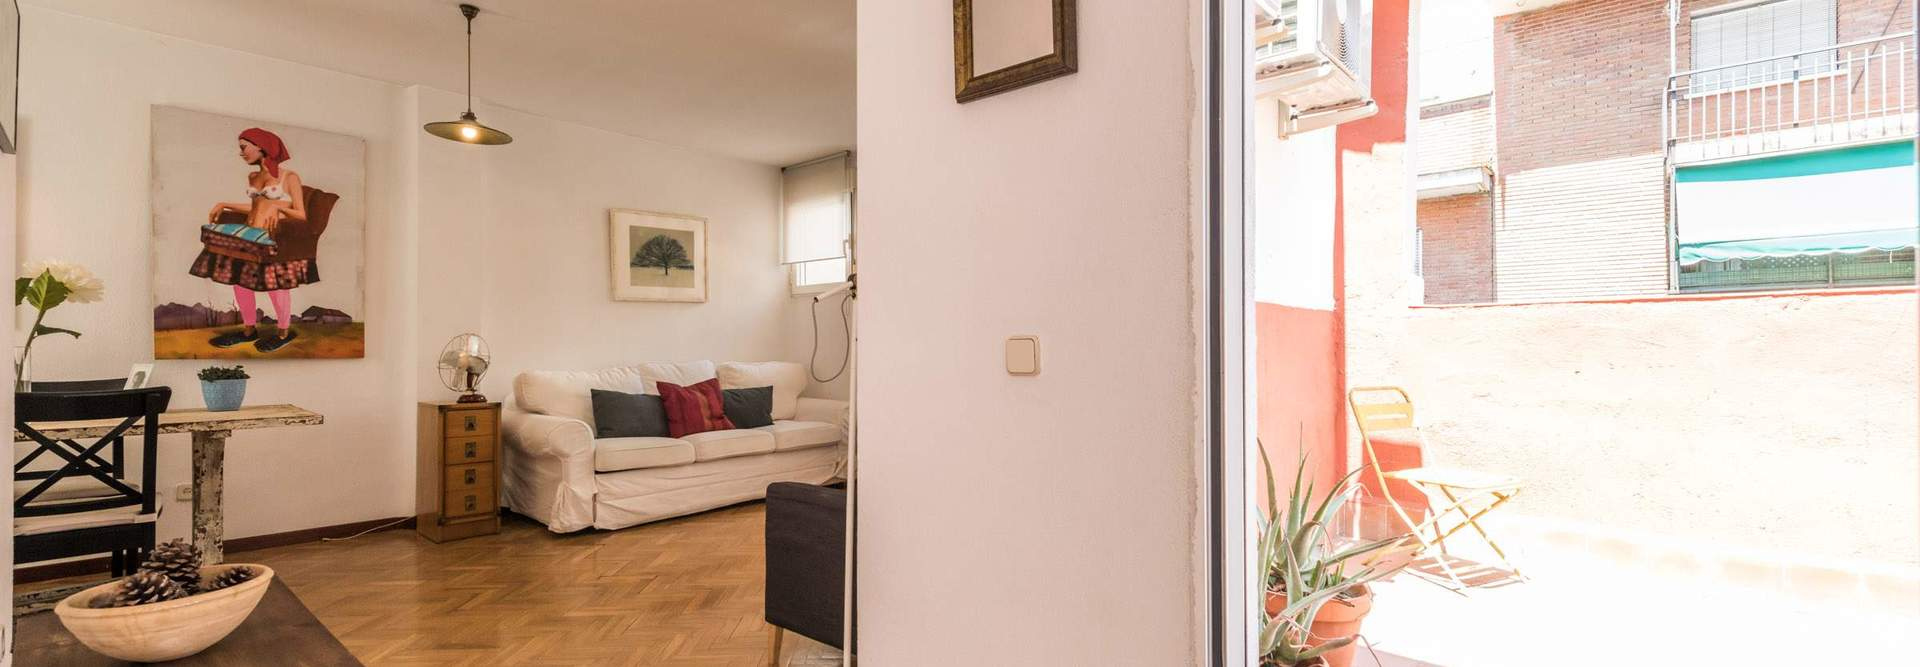 Home alquiler apartamento por d as madrid centro  23